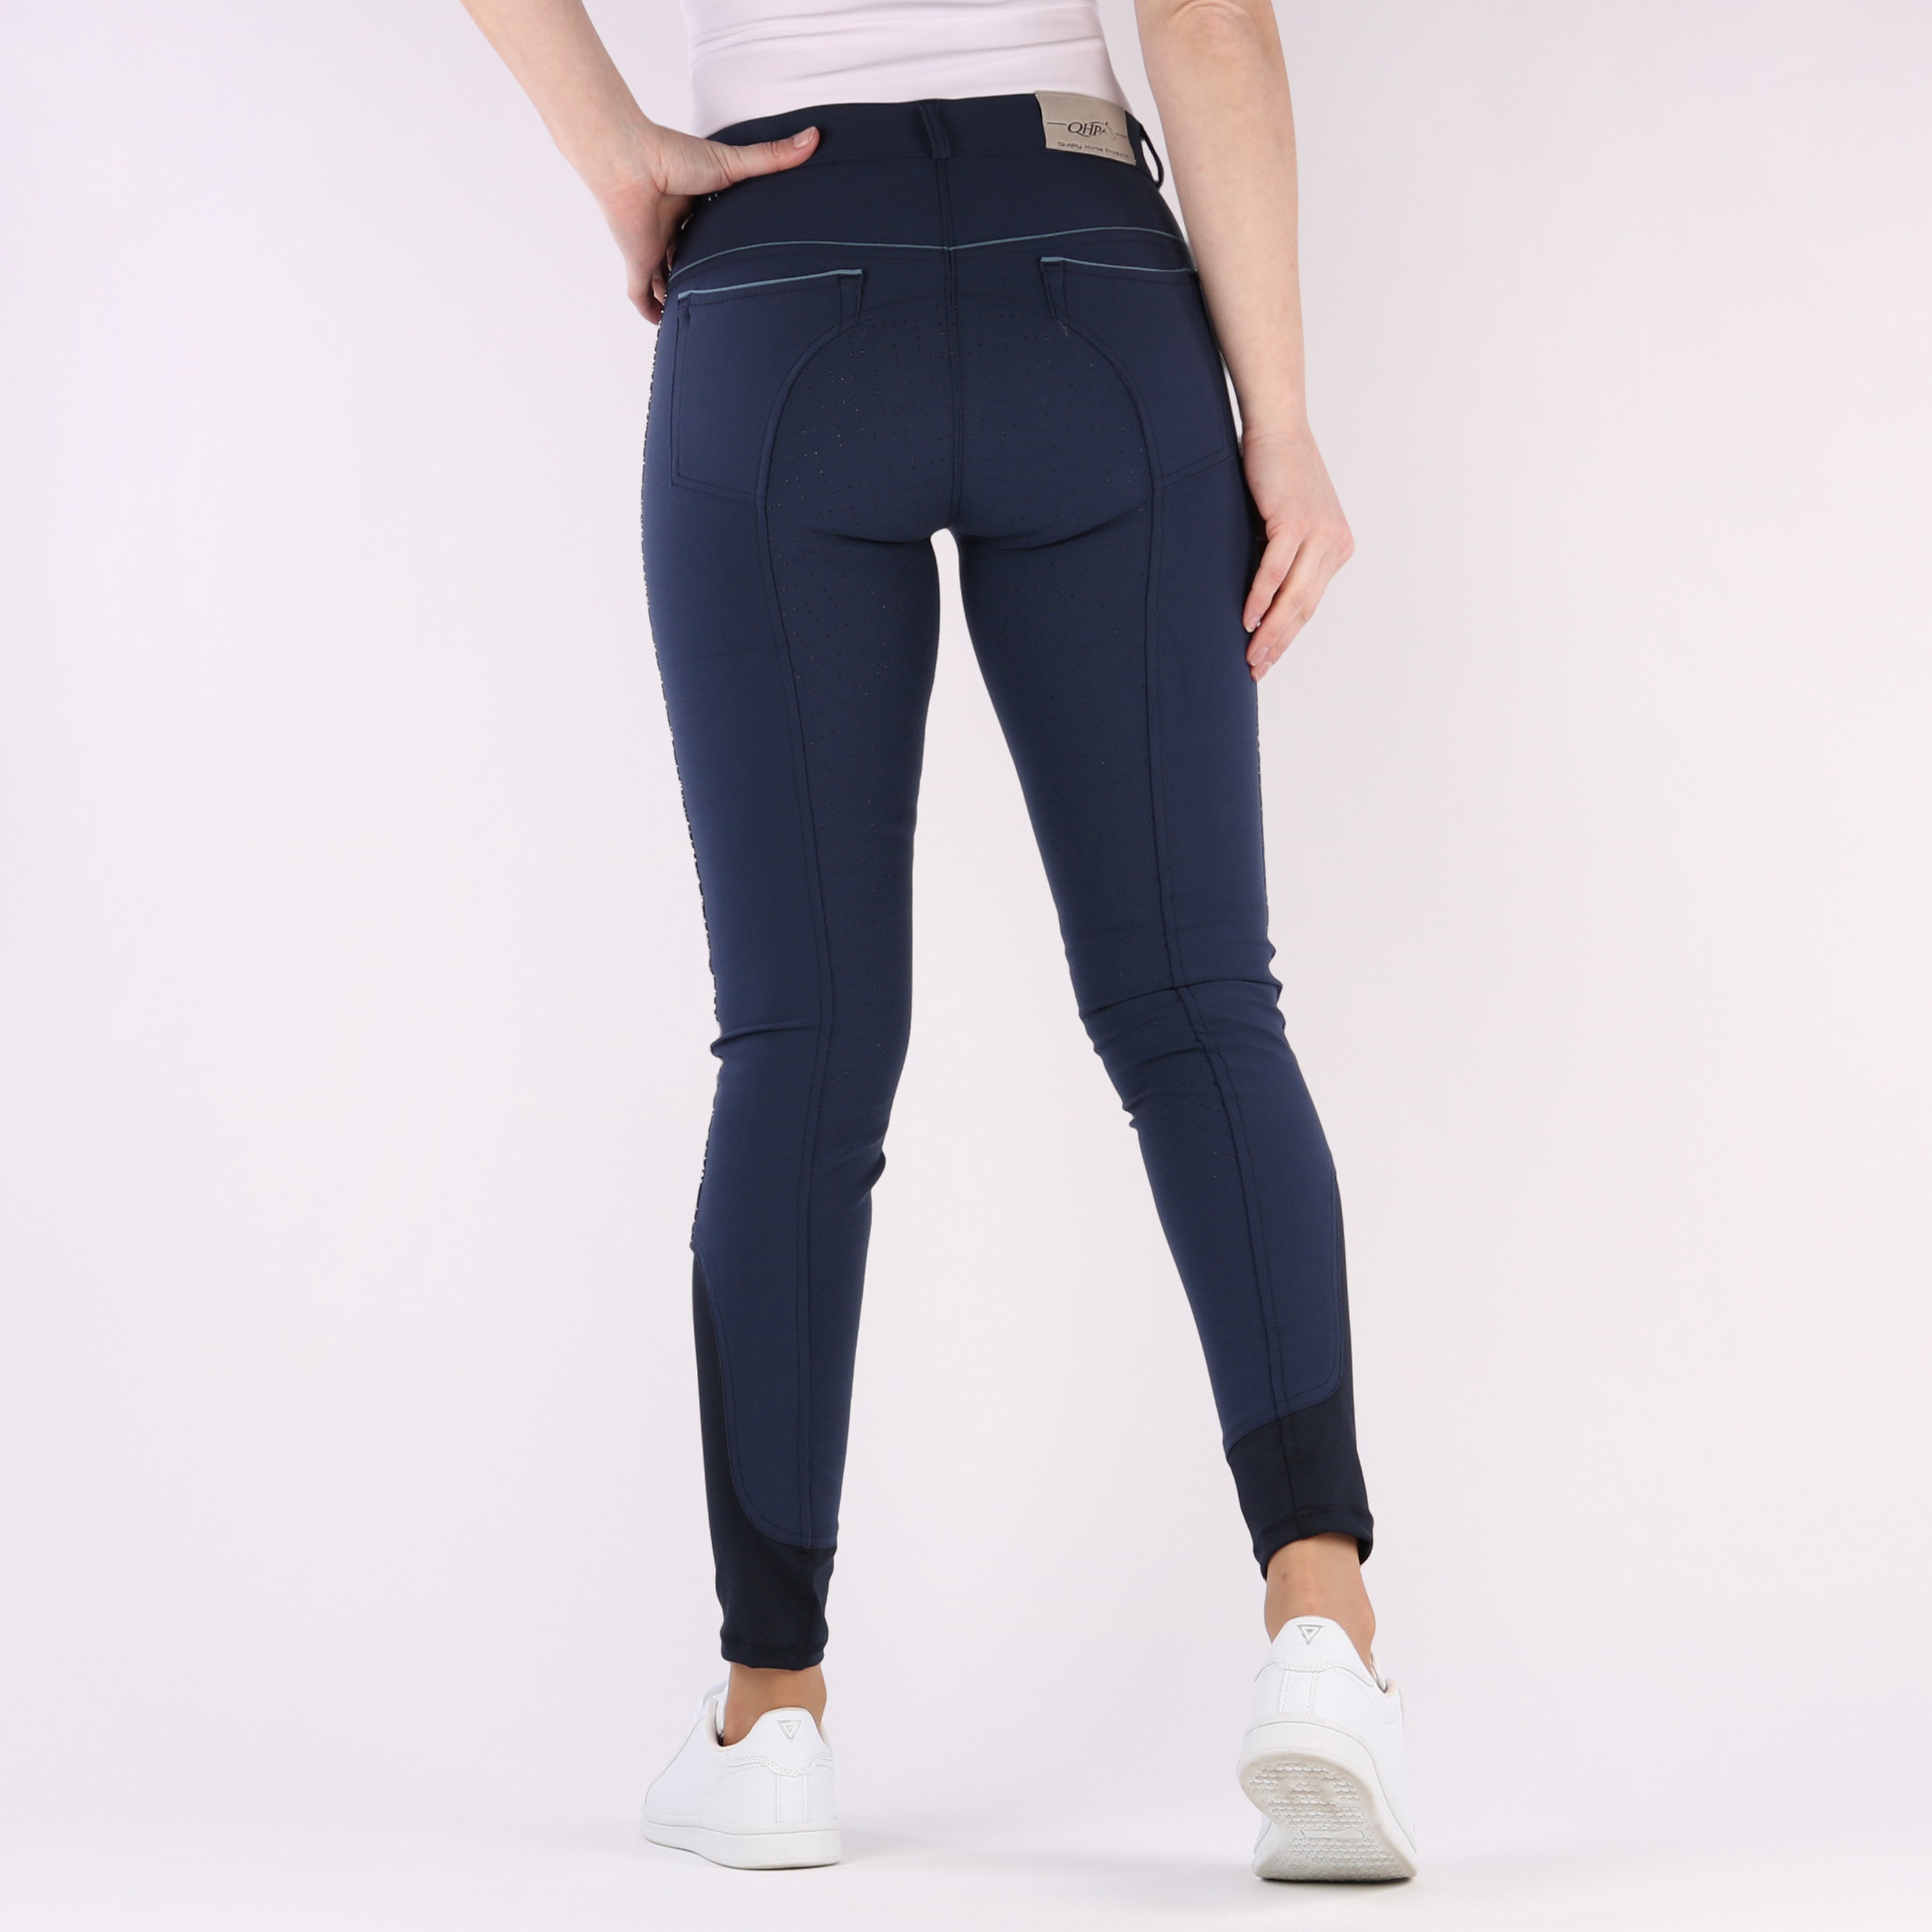 Rijlegging Epplejeck Illustris Kids Siliconen, 176�in pink